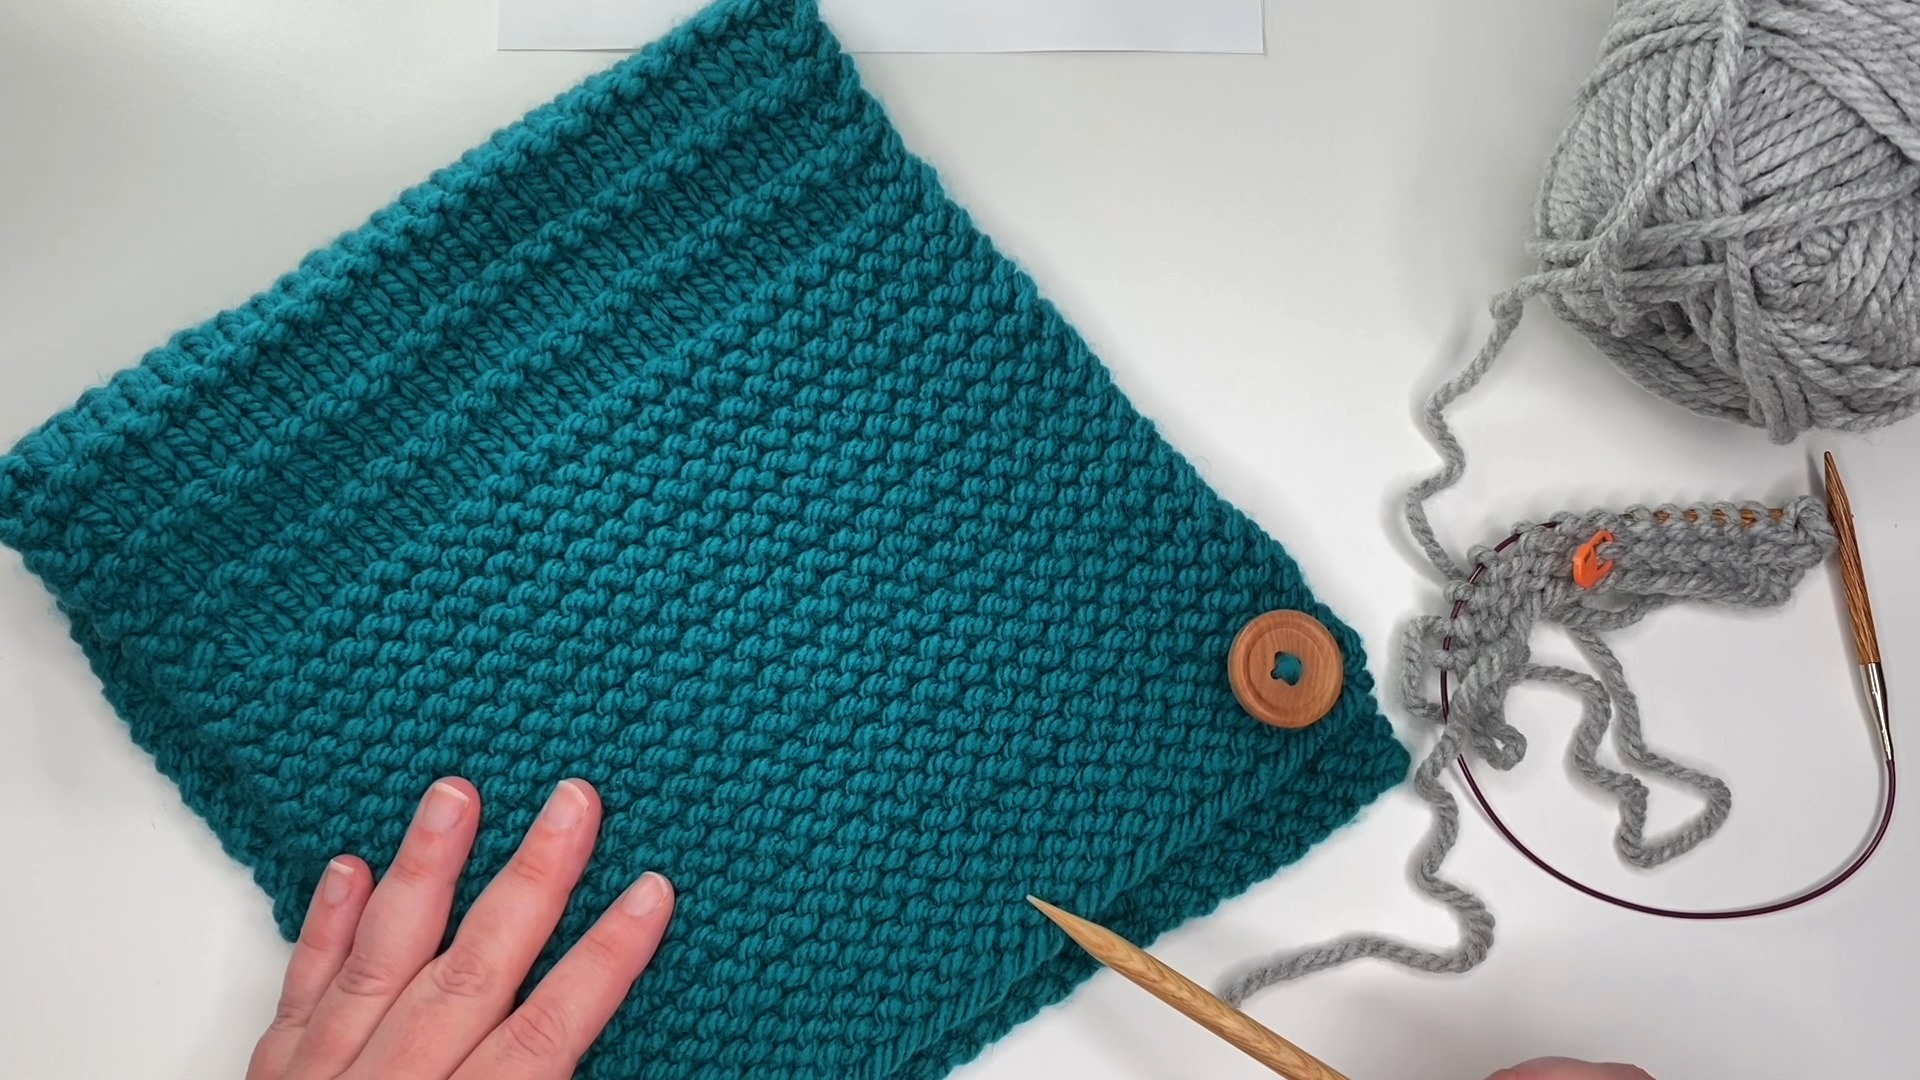 14-Day Learn to Knit Series: Day 11